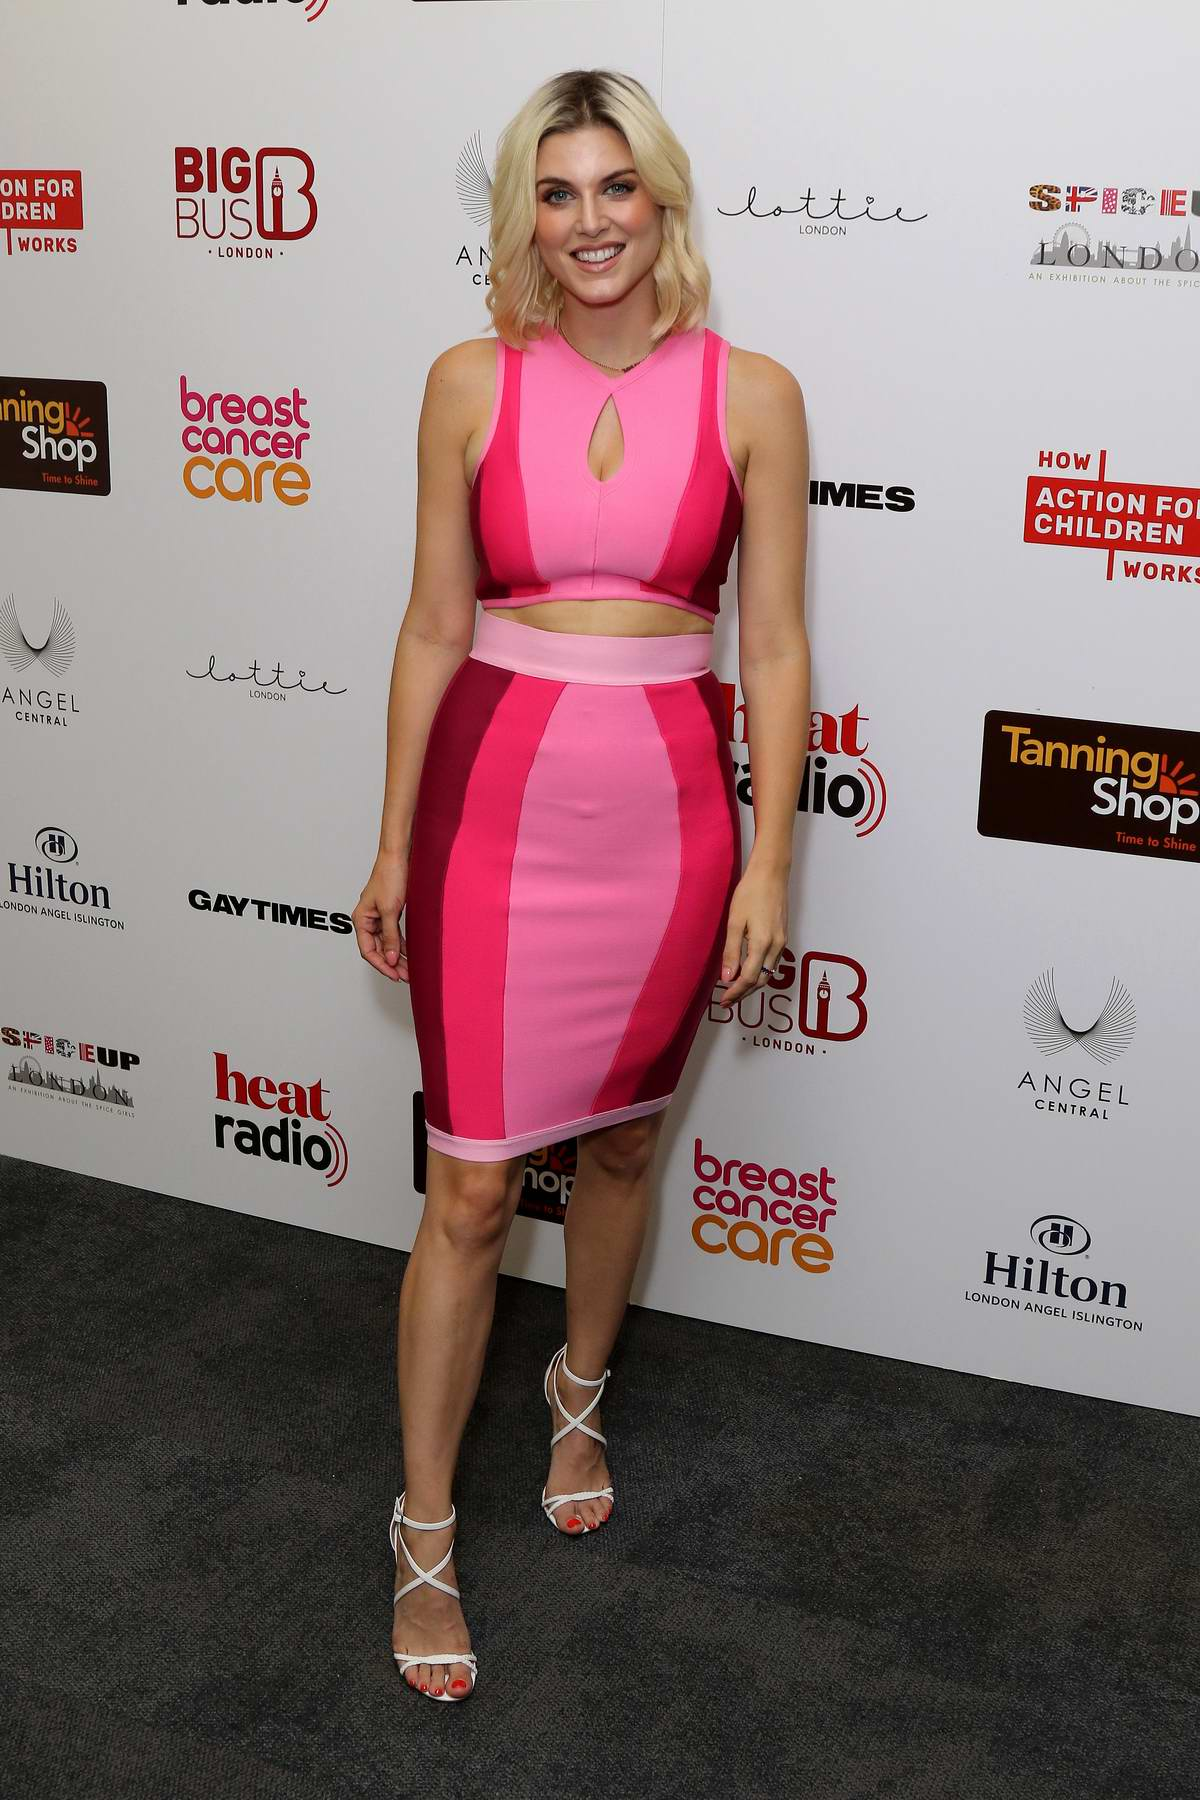 Ashley James attends Spice Girls Exhibition VIP Launch in London, UK